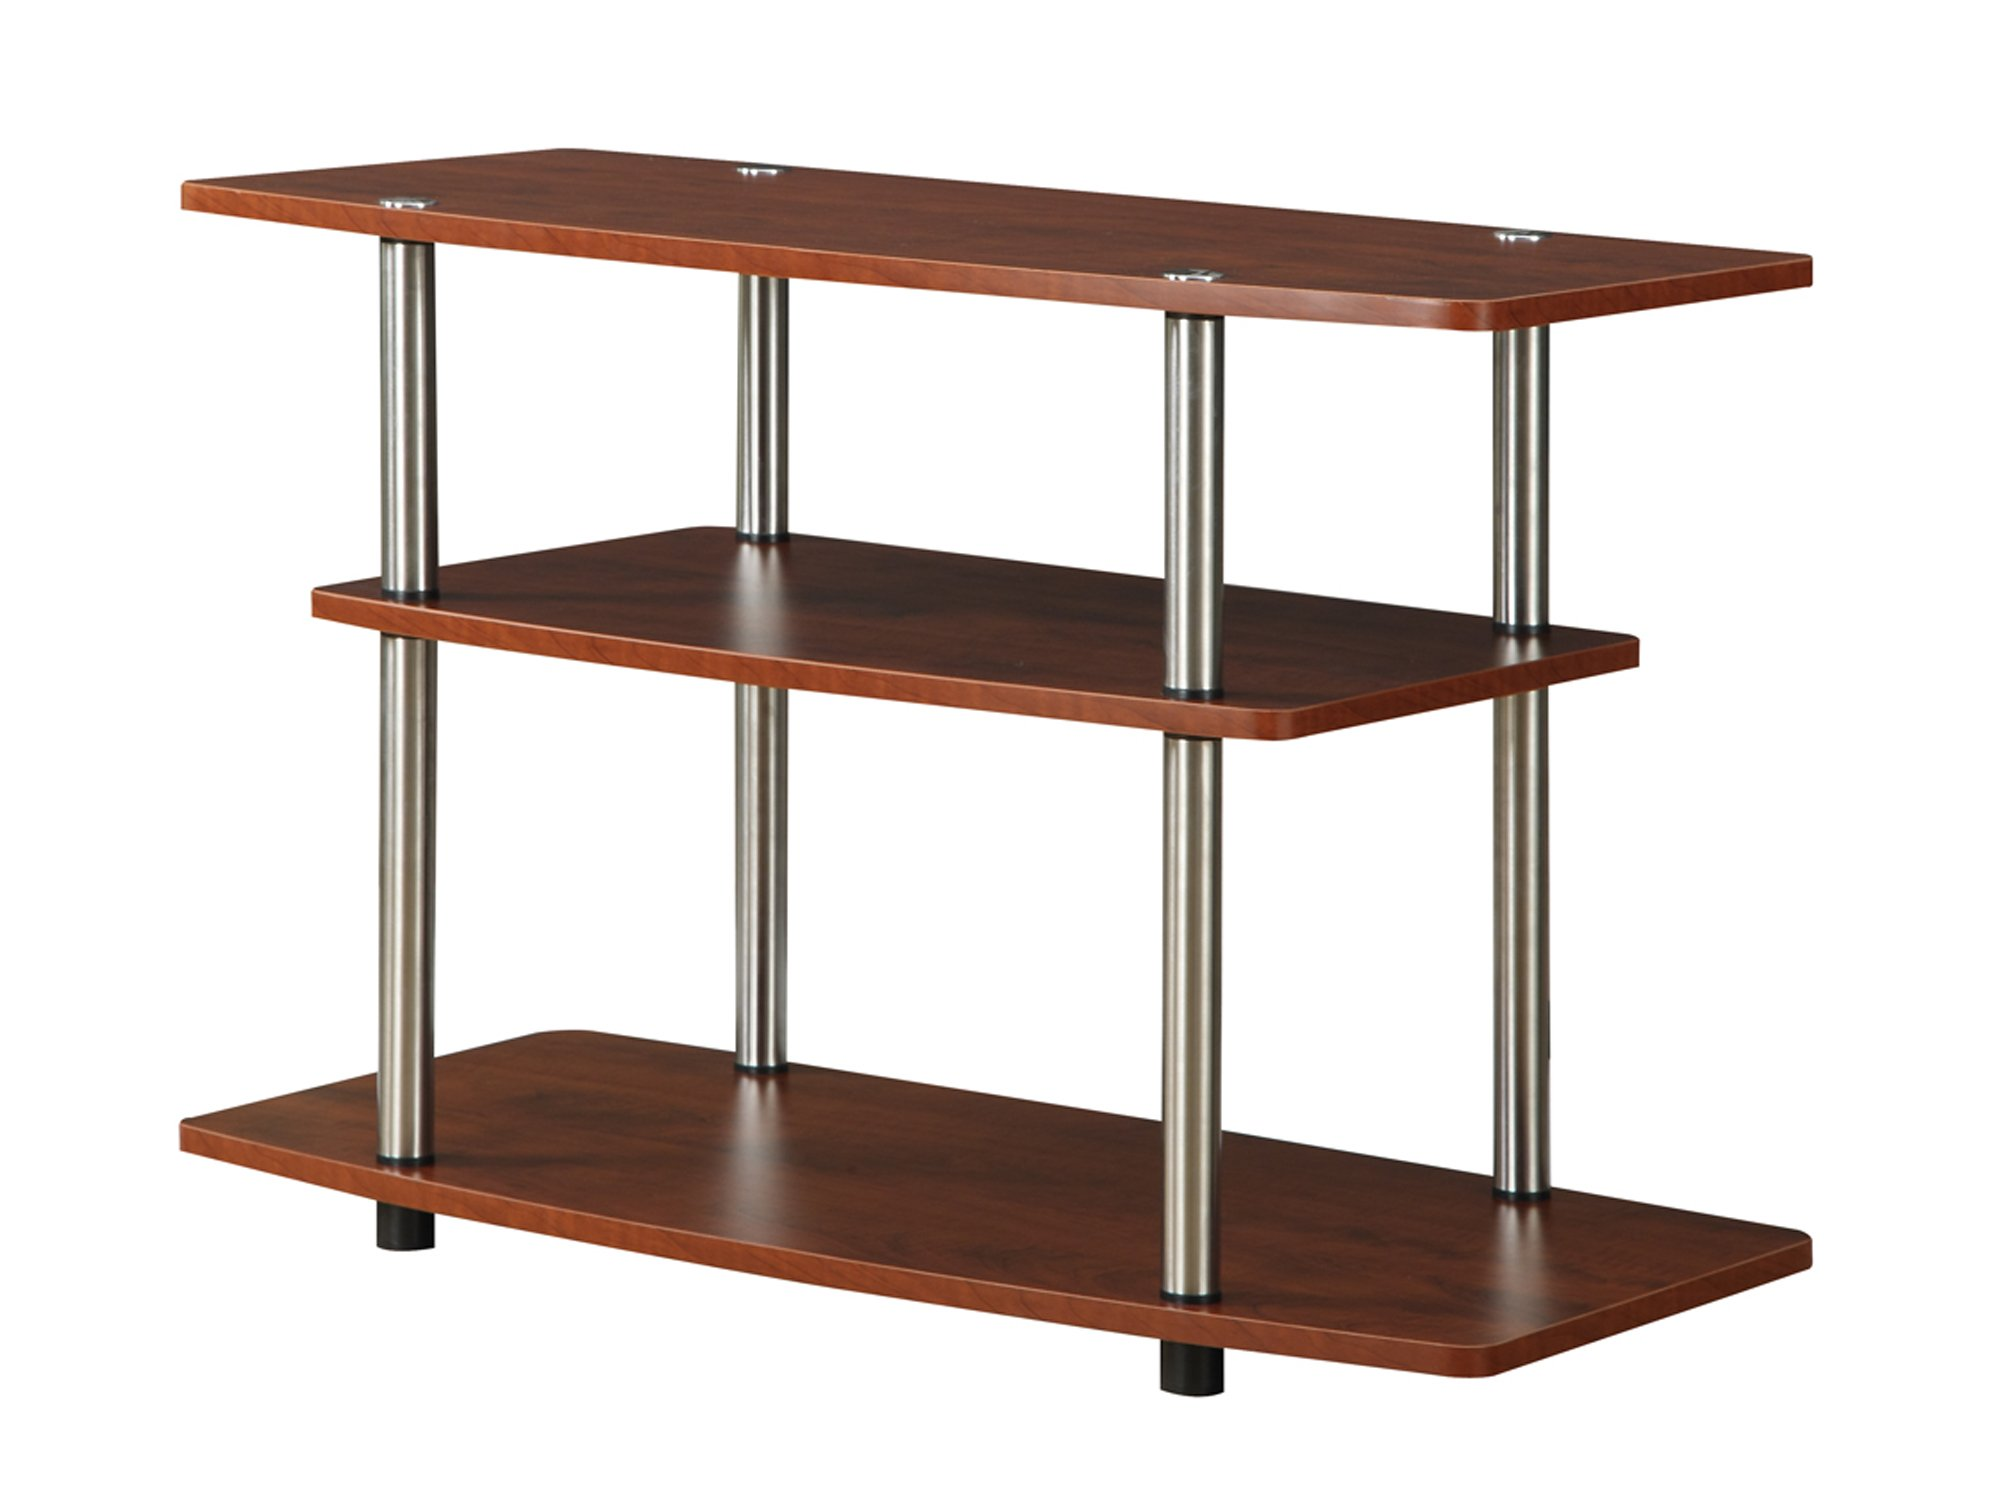 Convenience Concepts Designs2Go 3-Tier TV Stand for Flat Panel Television Up to 32-Inch or 80-Pound, Cherry